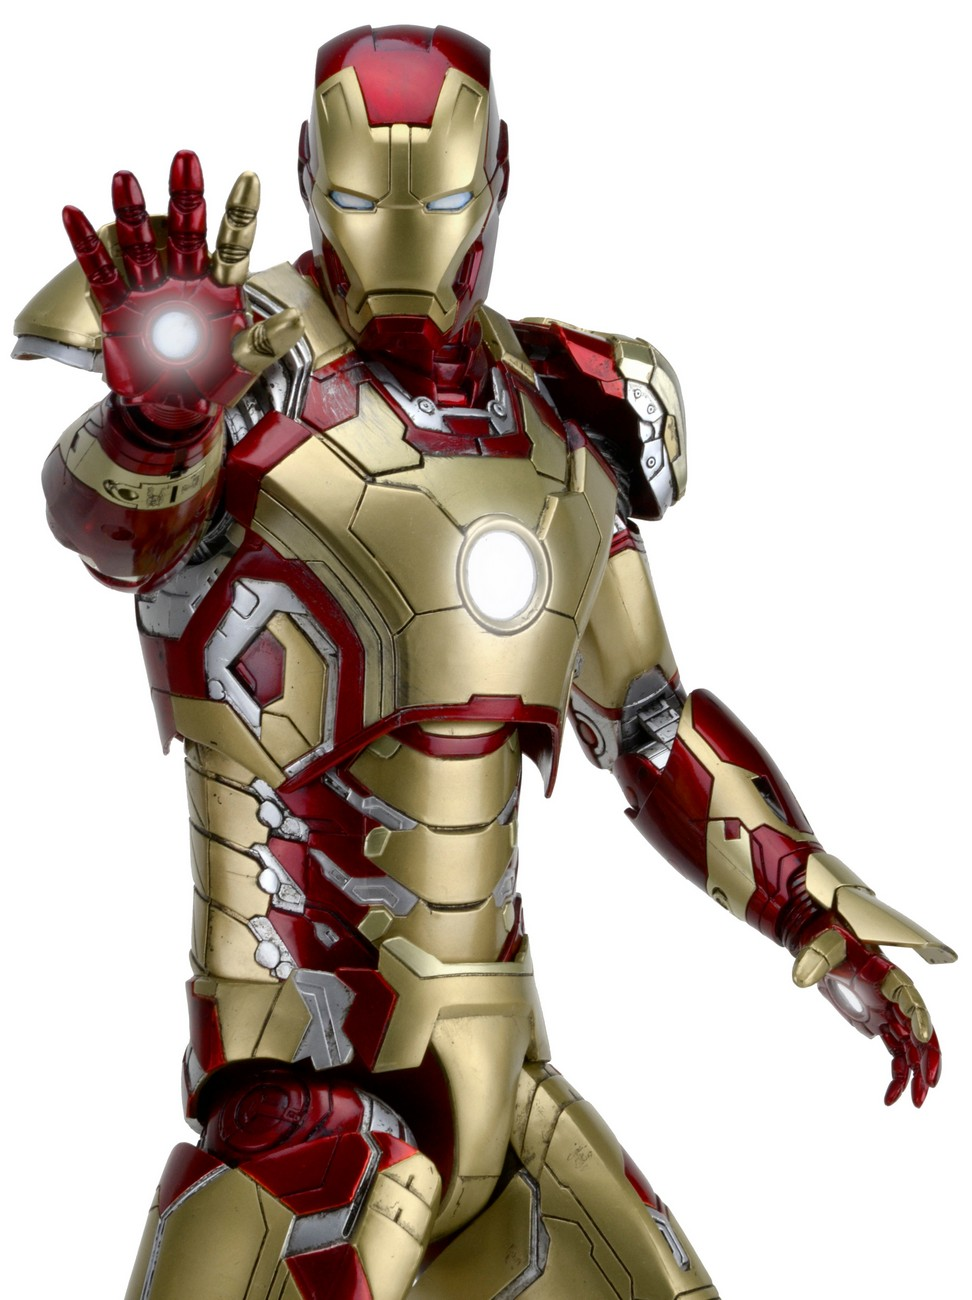 Discontinued iron man 3 1 4 scale action figure iron man mark 42 with led lights - Iron man 1 images ...